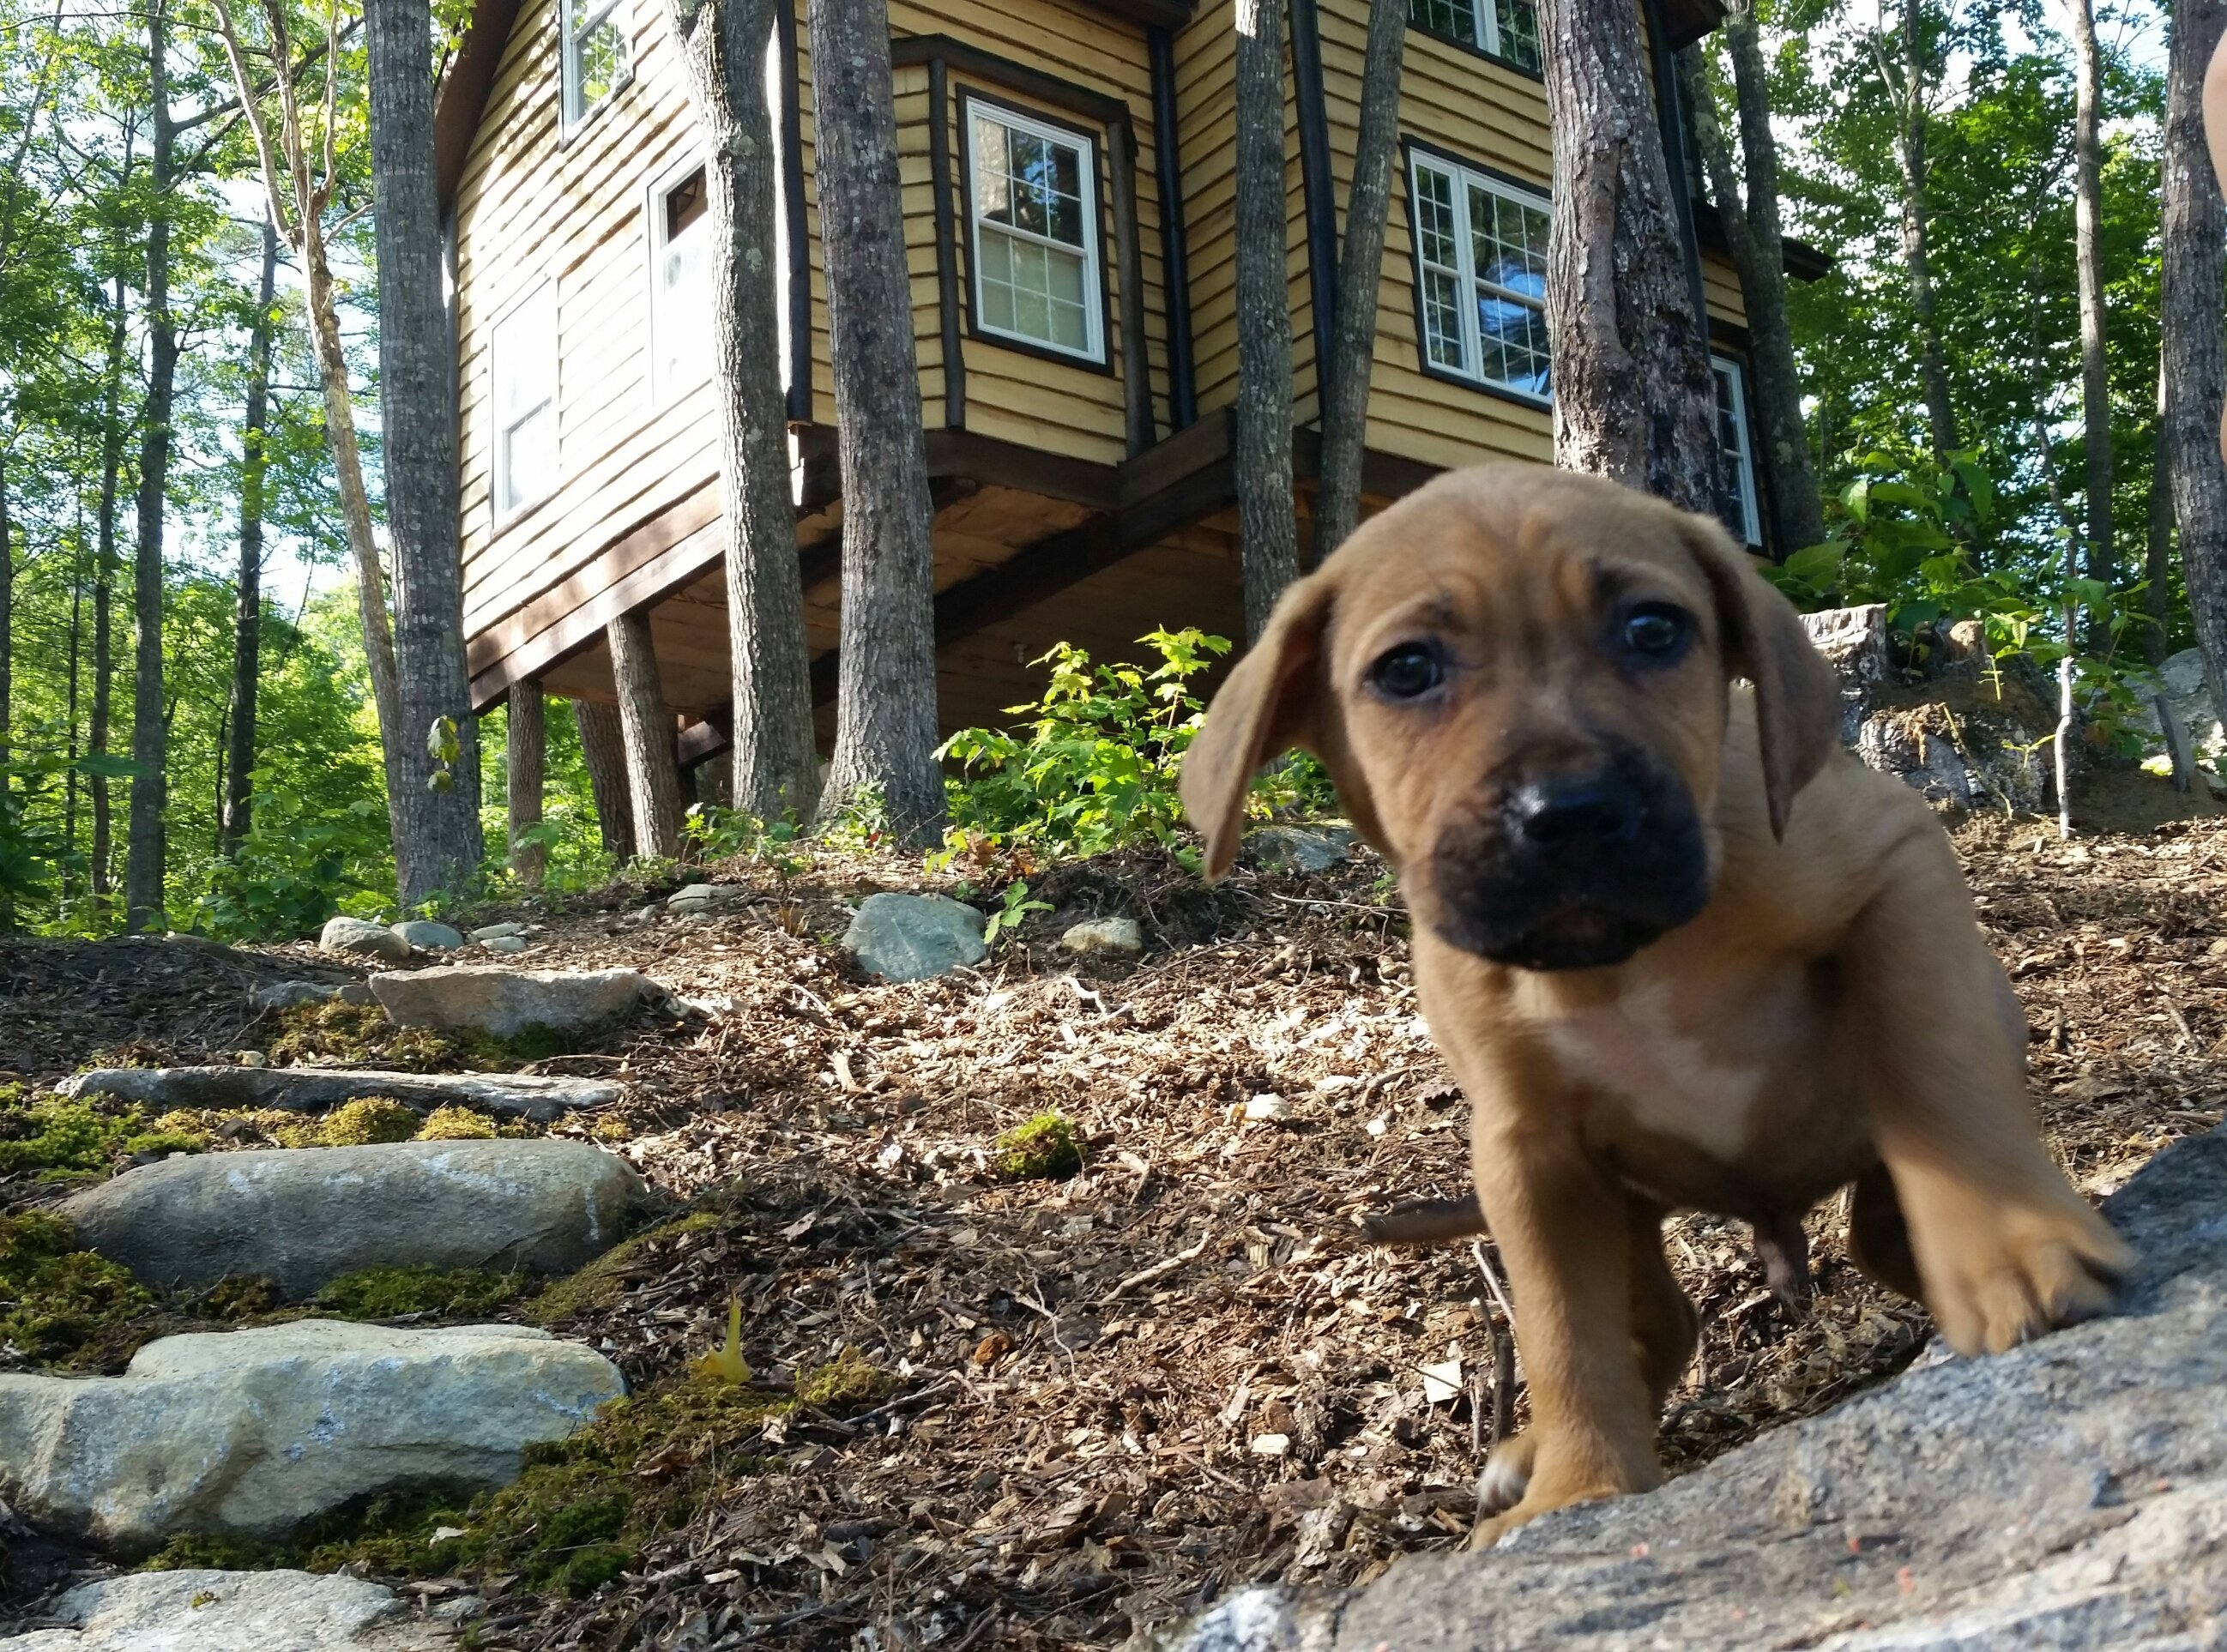 Our newest addition to TimberStone family, meet Timber!